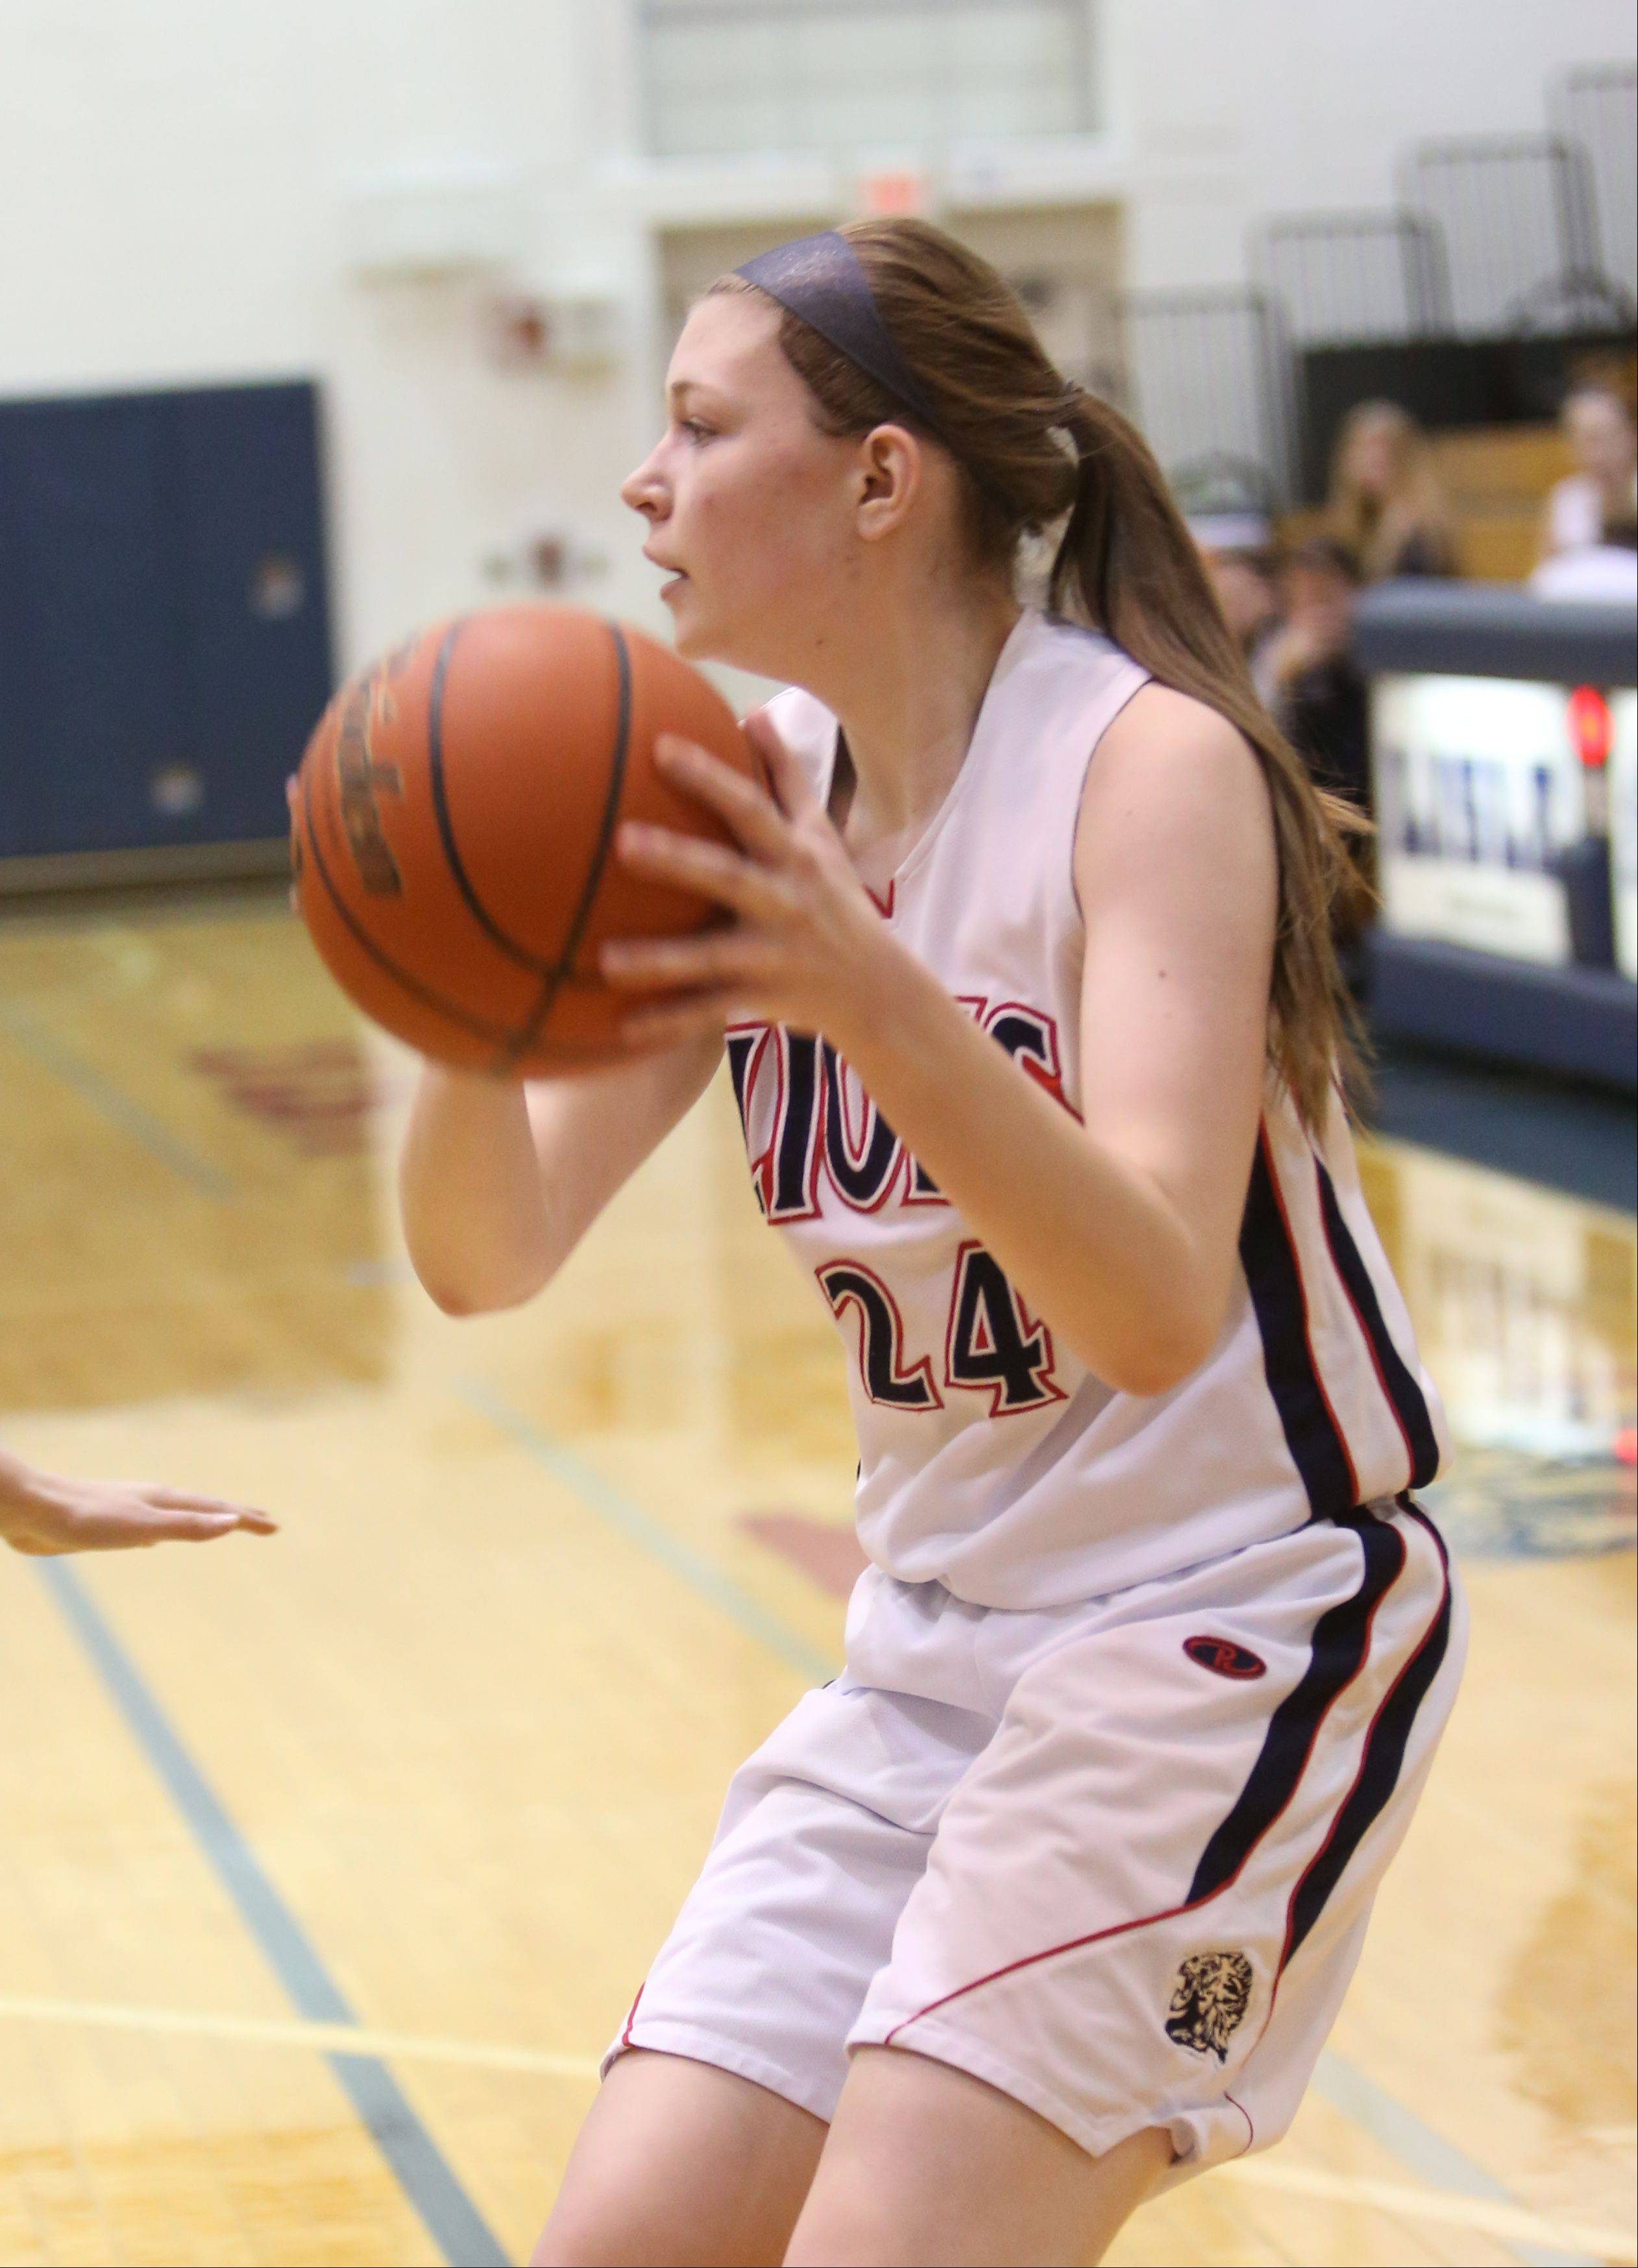 Photos from the Seneca at Lisle girls basketball game Monday, Jan. 13.